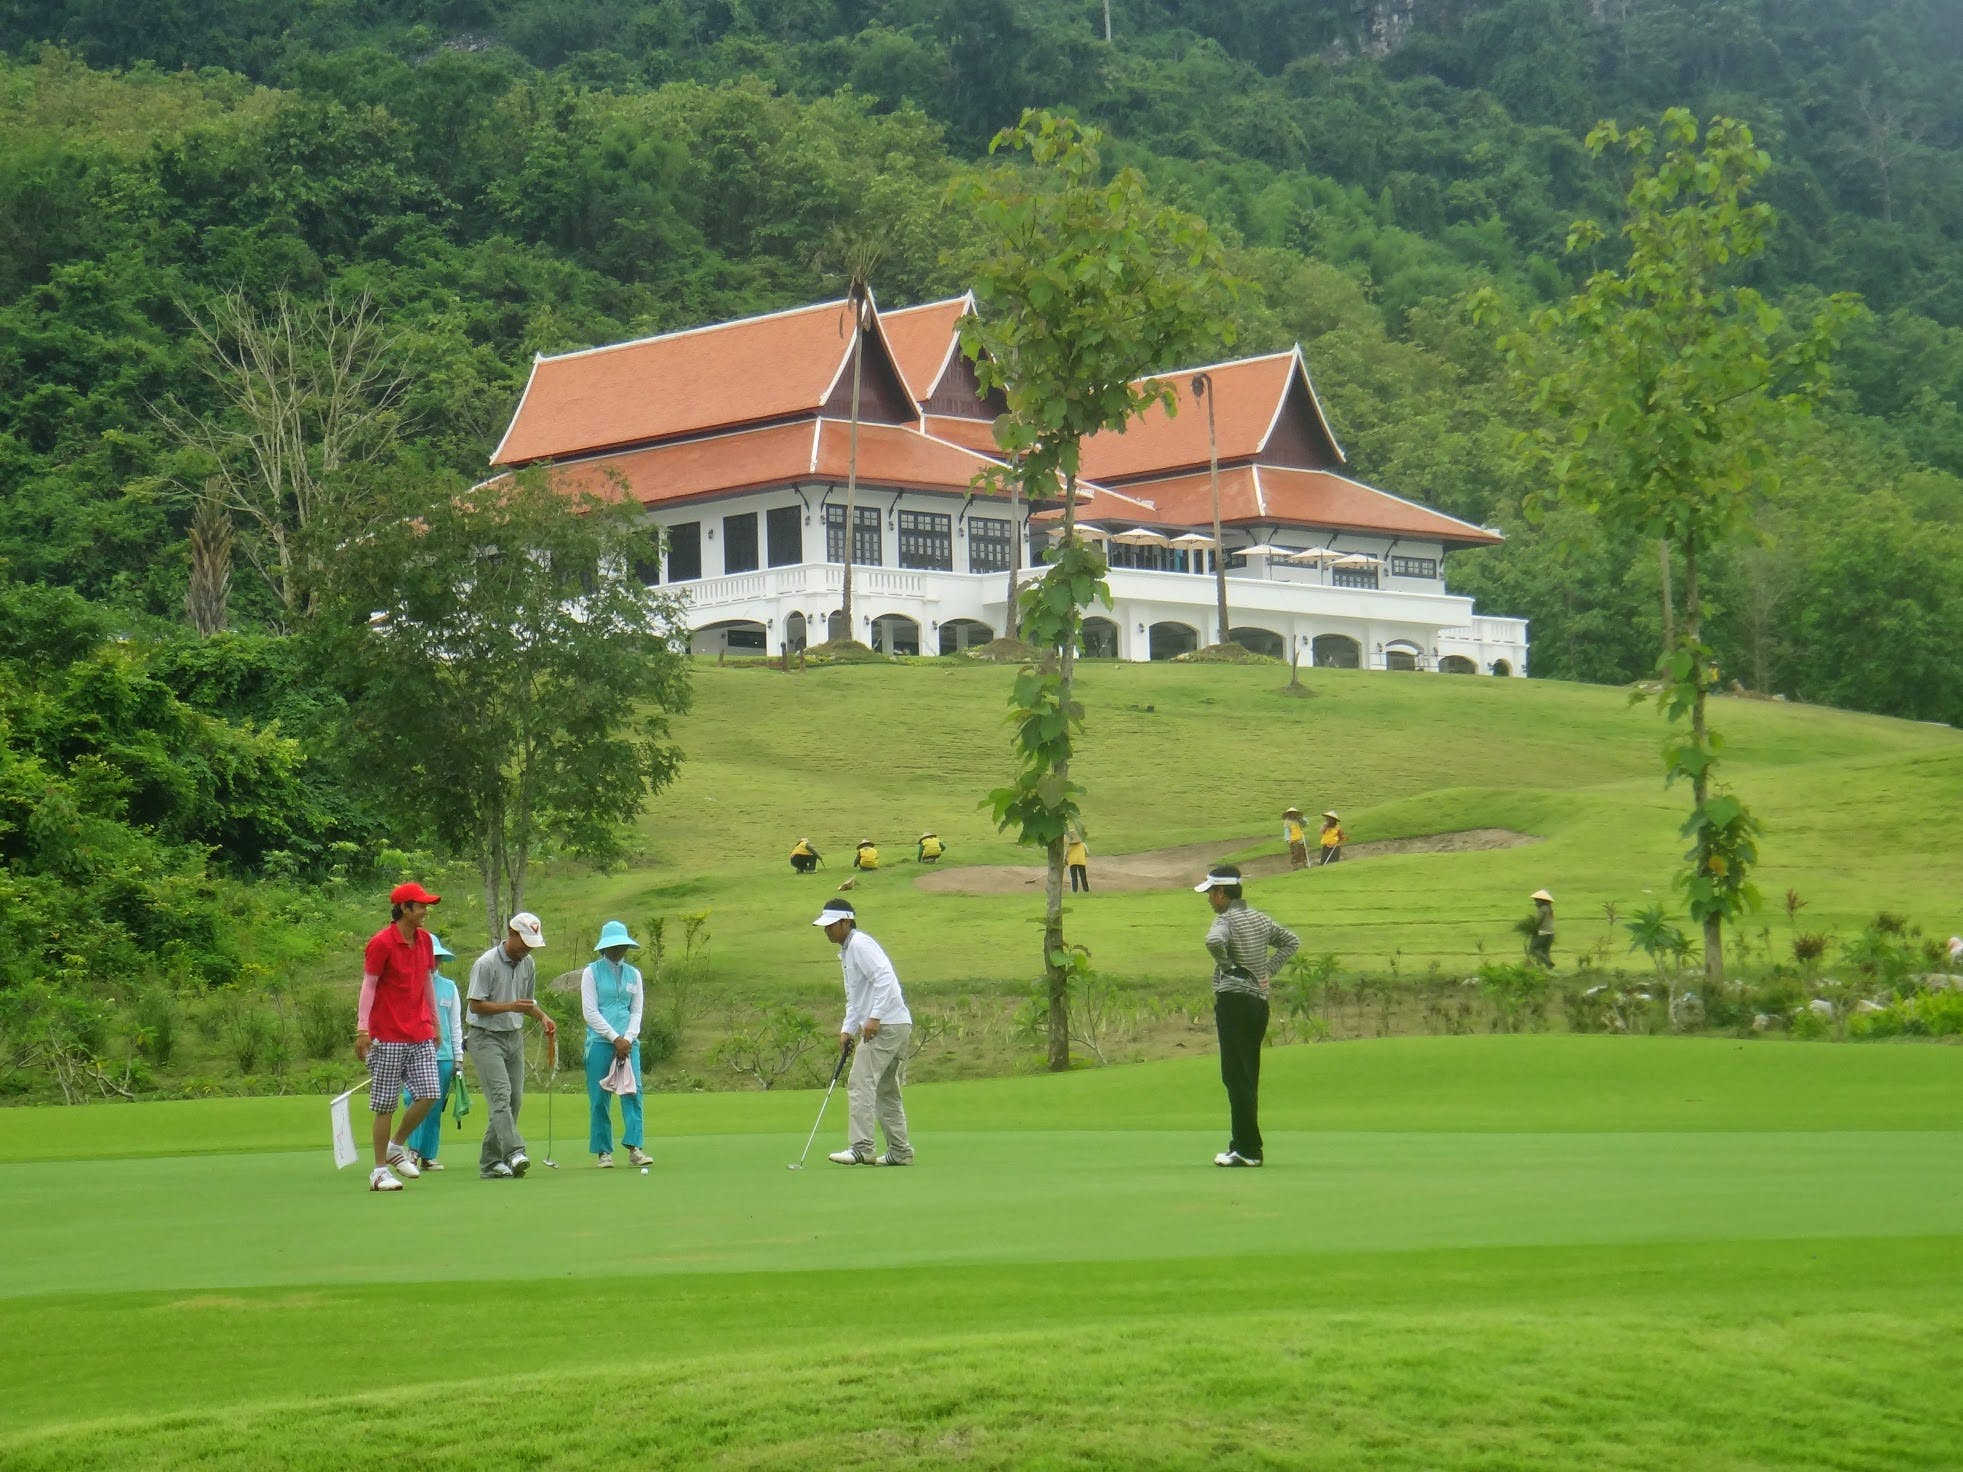 Luang Prabang golf course club house restaurant Laos championship